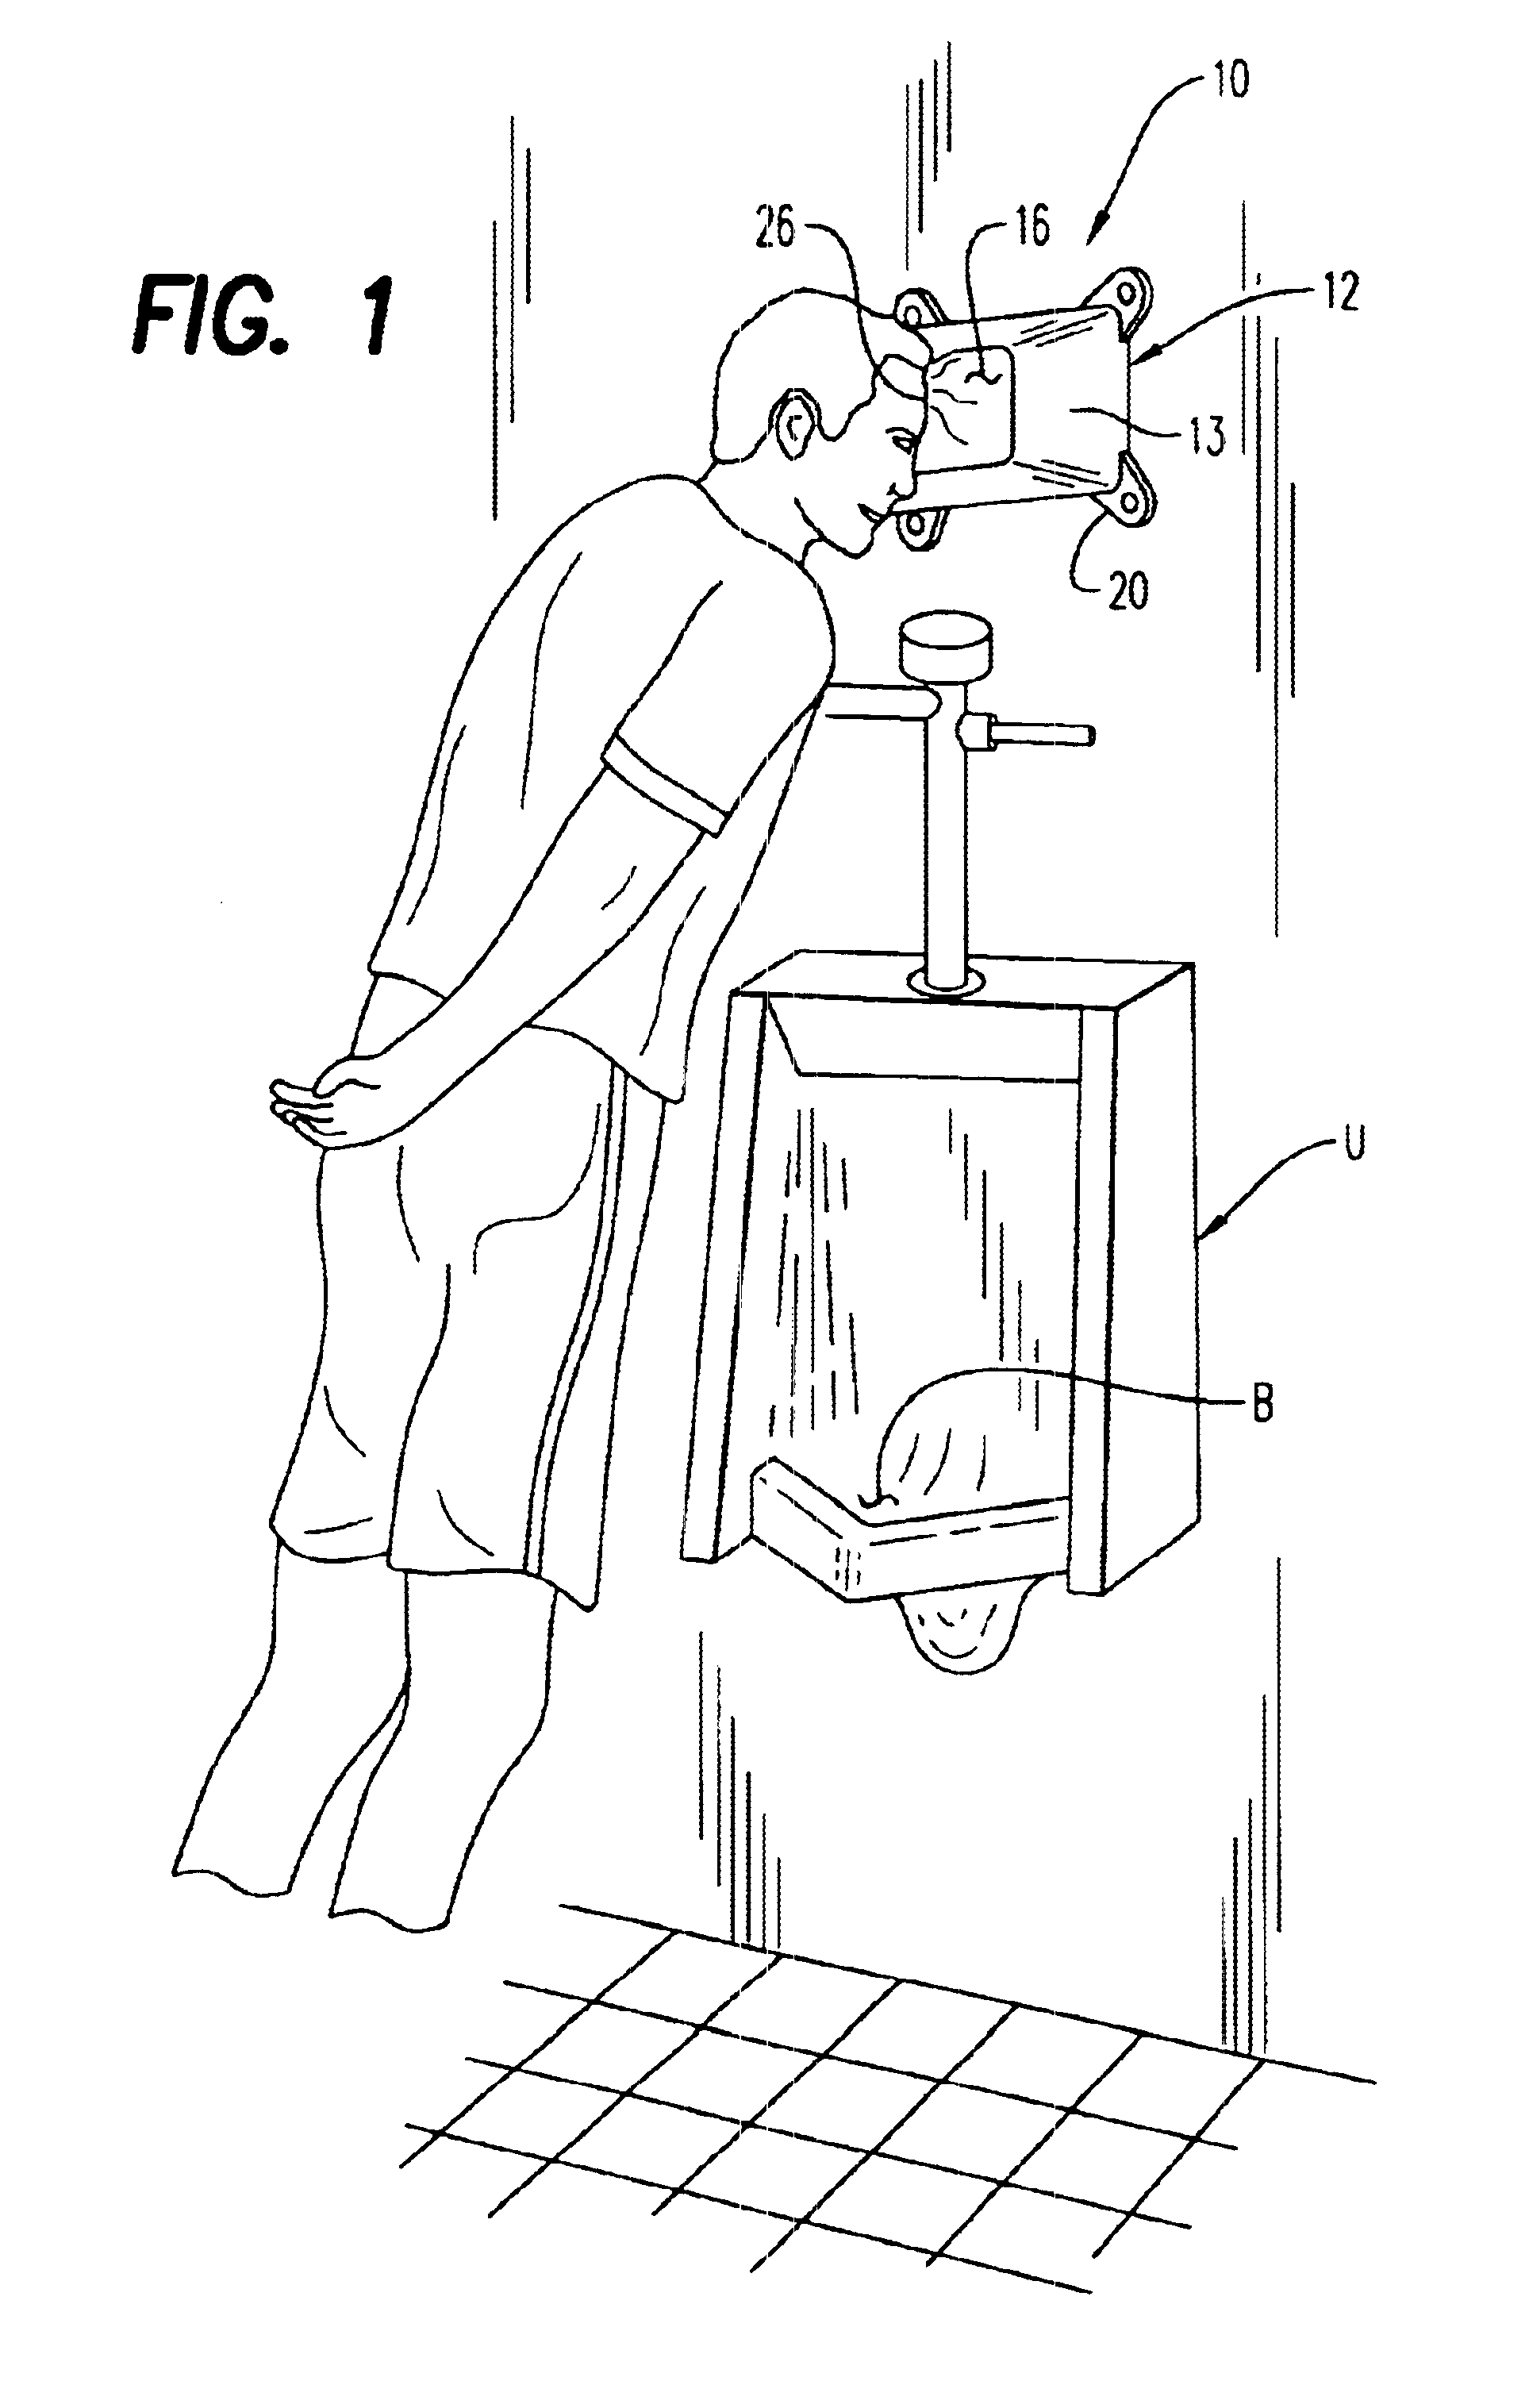 Patent Drawing. Patent US6681419   Forehead support apparatus   Google Patents